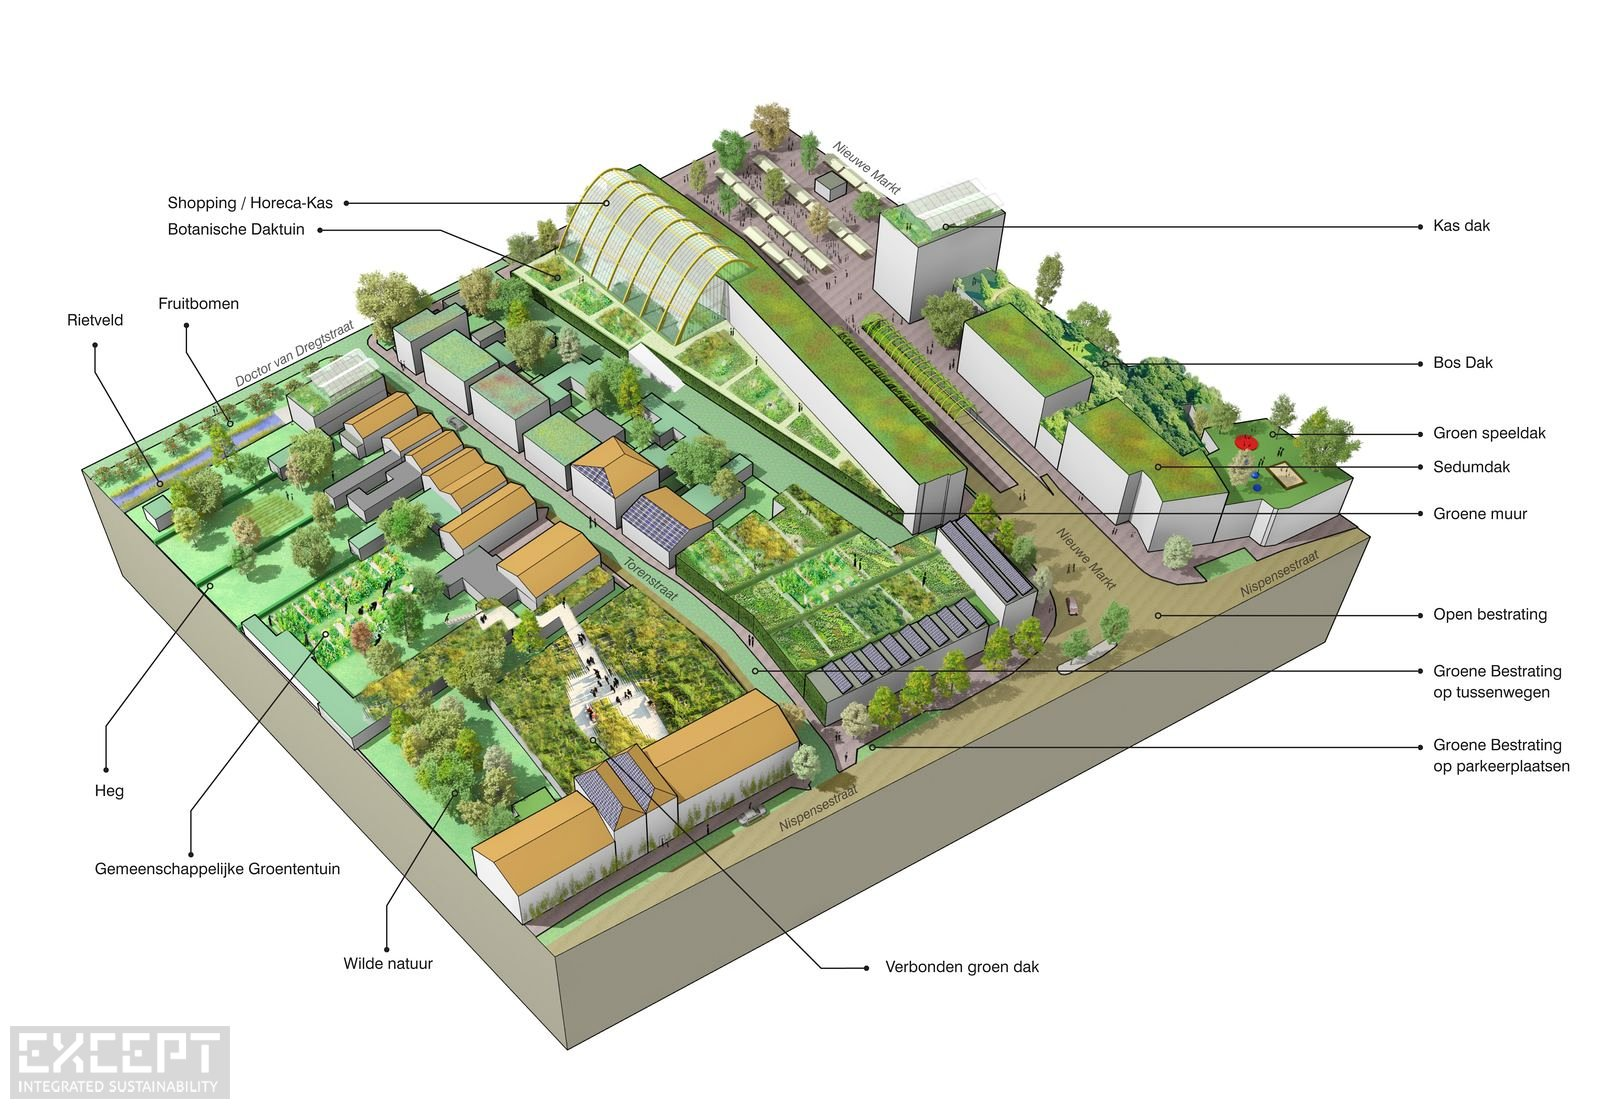 How To Read Architectural Plans Except Integrated Sustainability Visualization